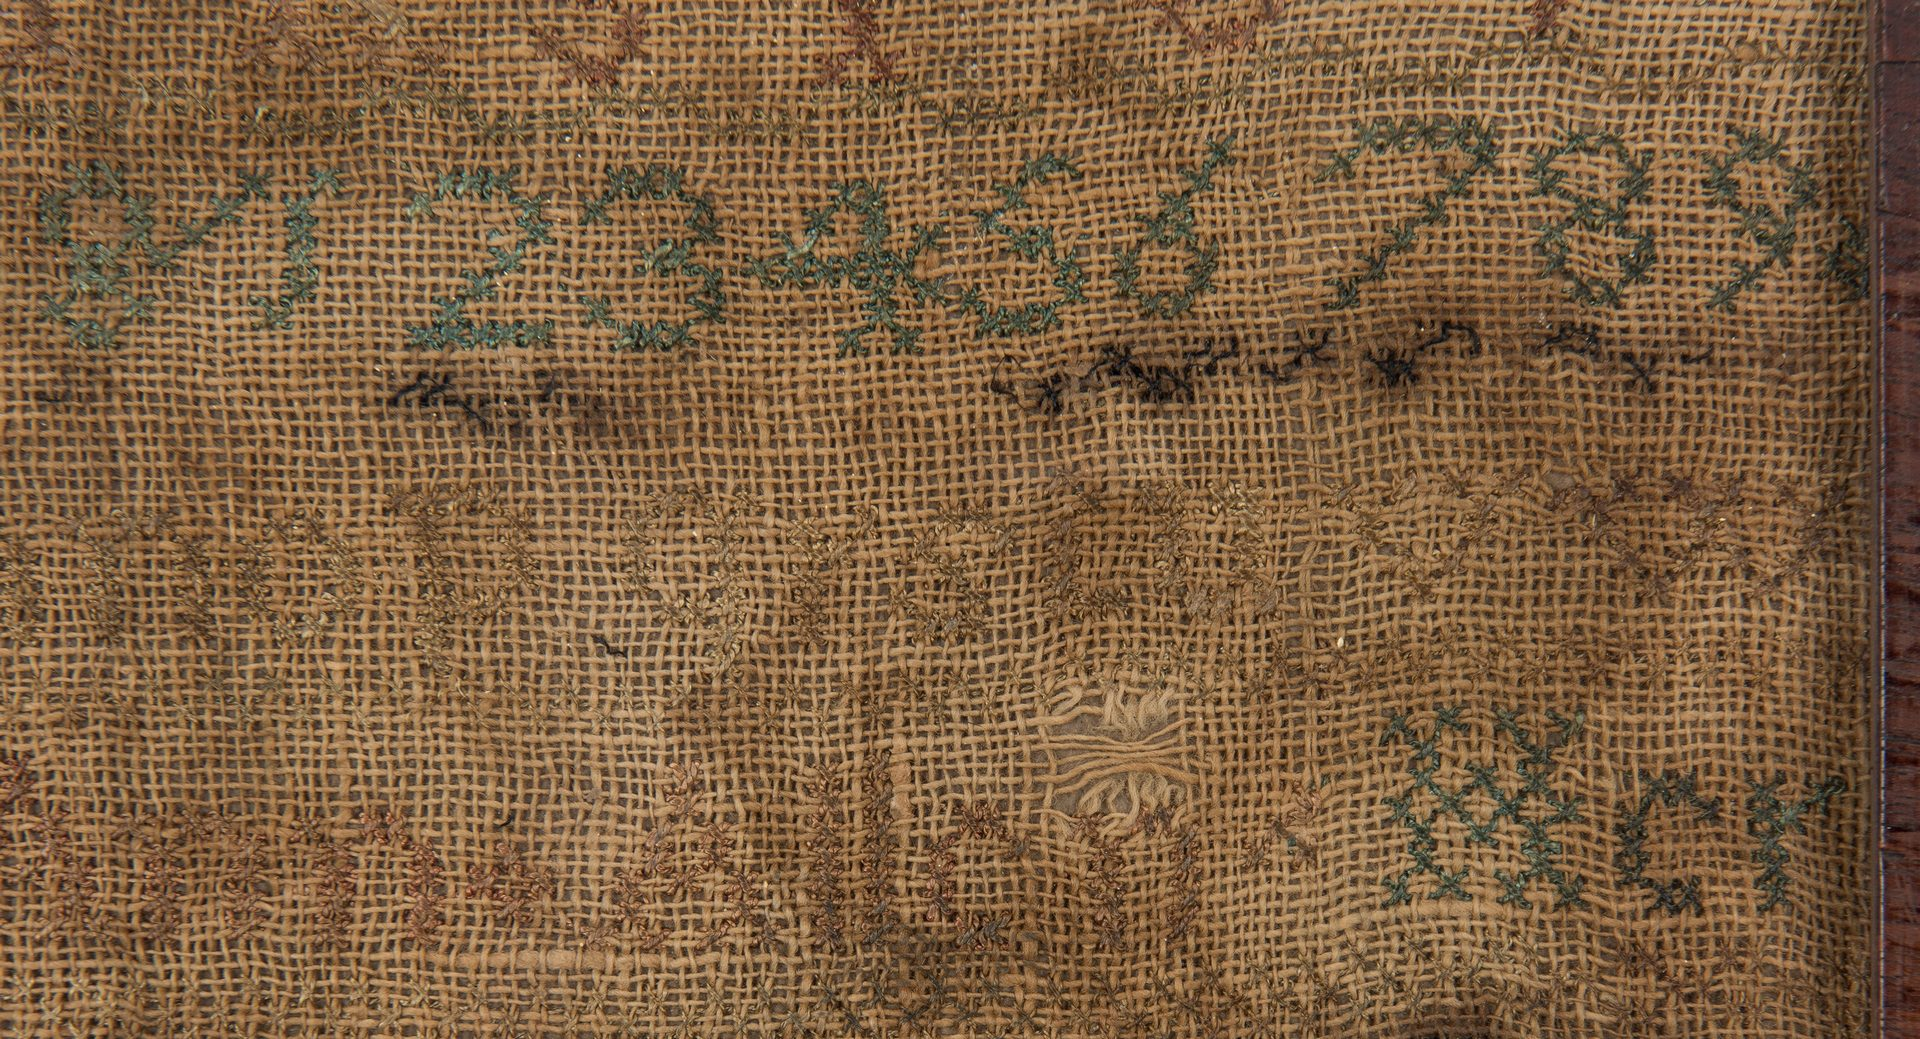 Lot 648: Kentucky House Sampler and Needlework Picture